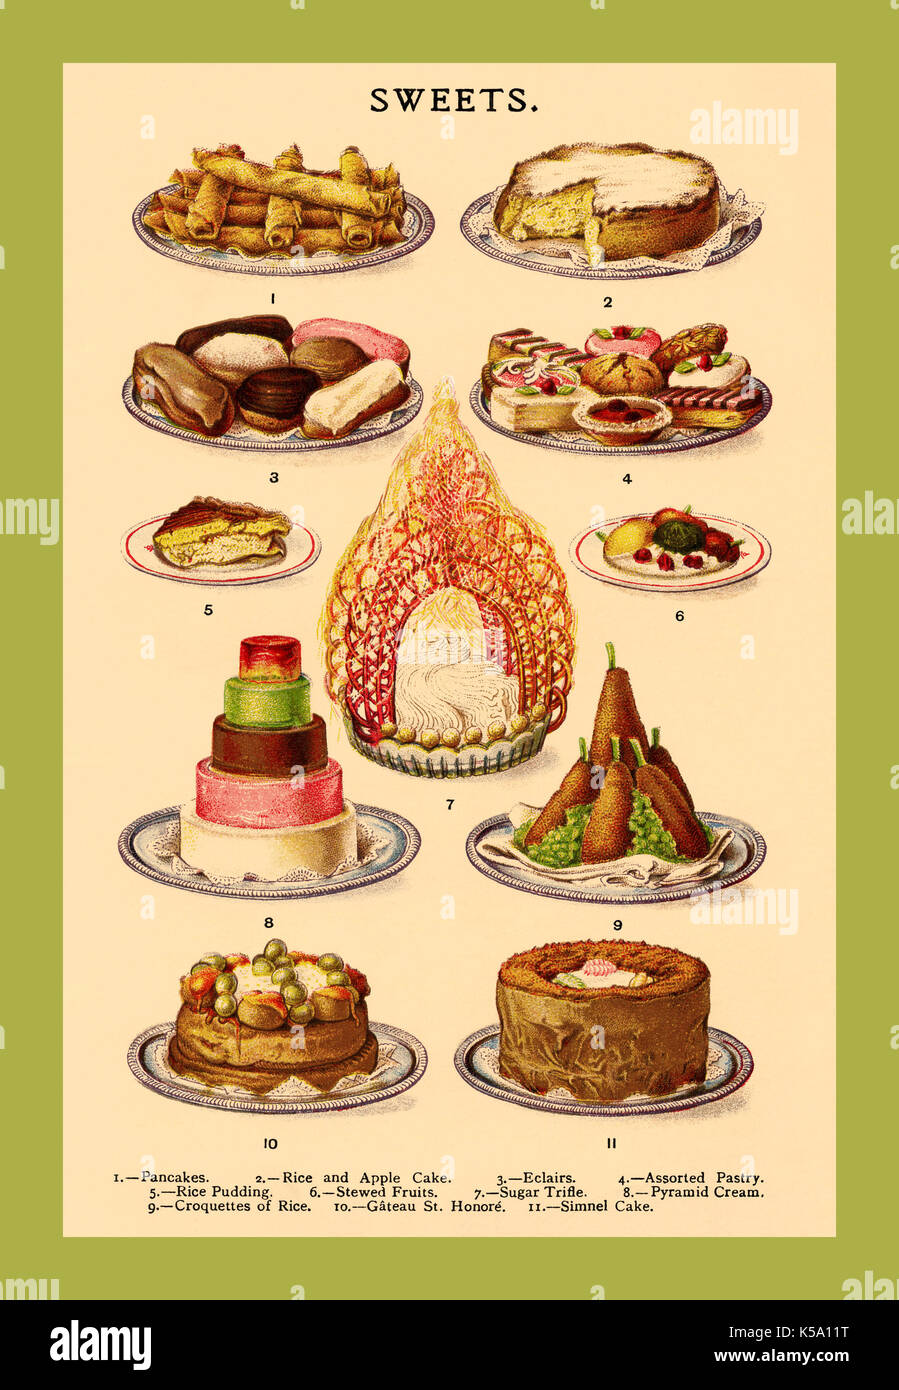 Victorian Sweets Desserts Puddings Jellies Pancakes Eclairs Pastry K A T